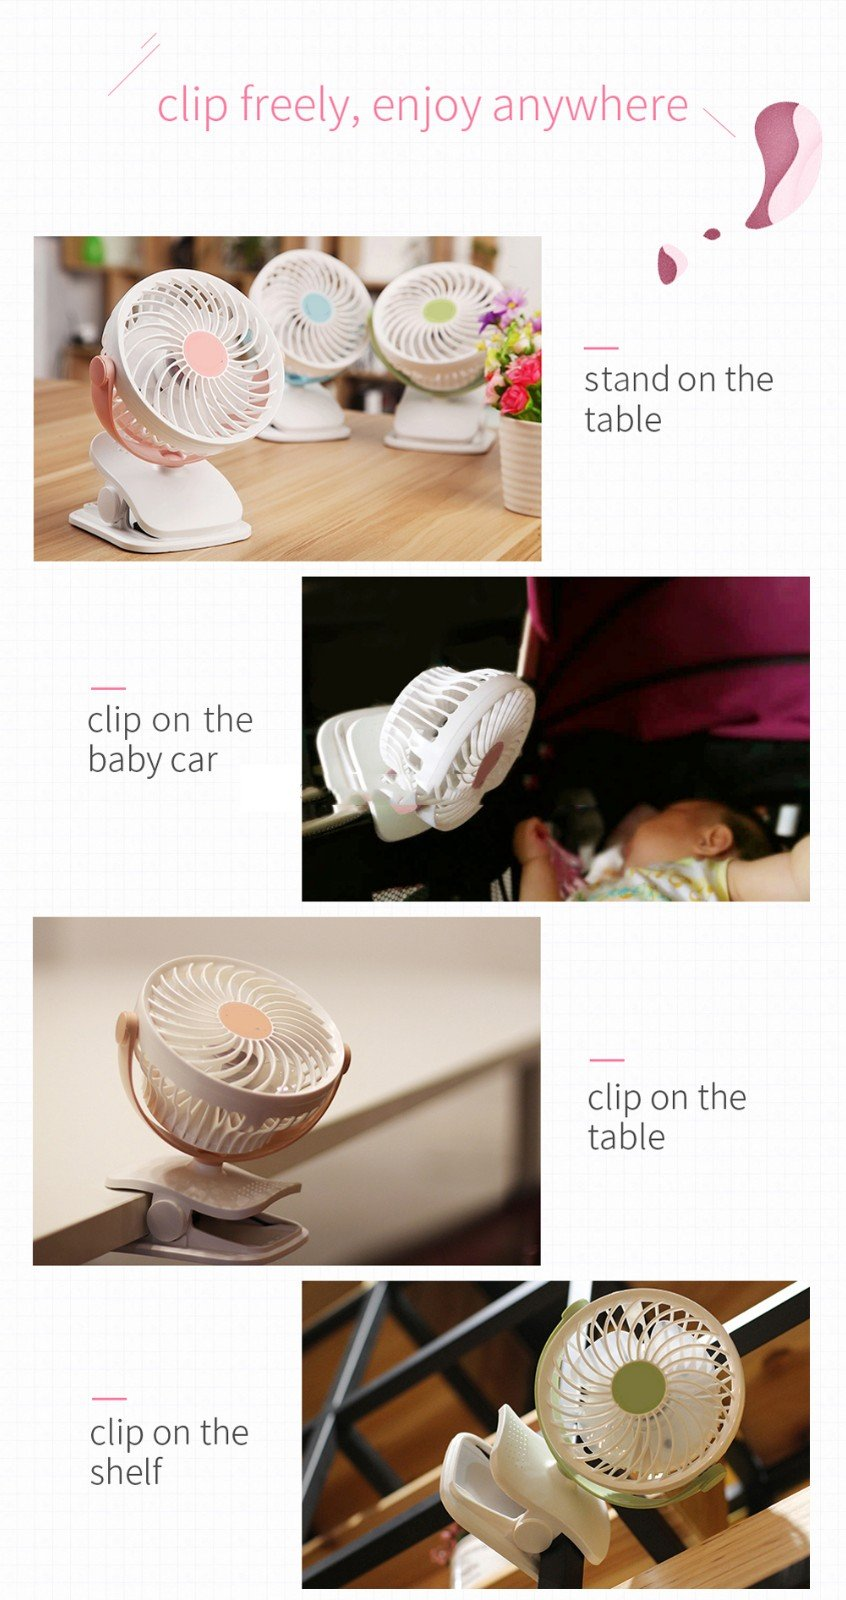 Baby Stroller Clip USB Fan Battery Operated Fan, Rechargeable, Quiet Design, Portable, 4-Speed Adjustable, for Desk, Tents, Car, Bed New- 4 Colors,Pink by YWXJY (Image #4)